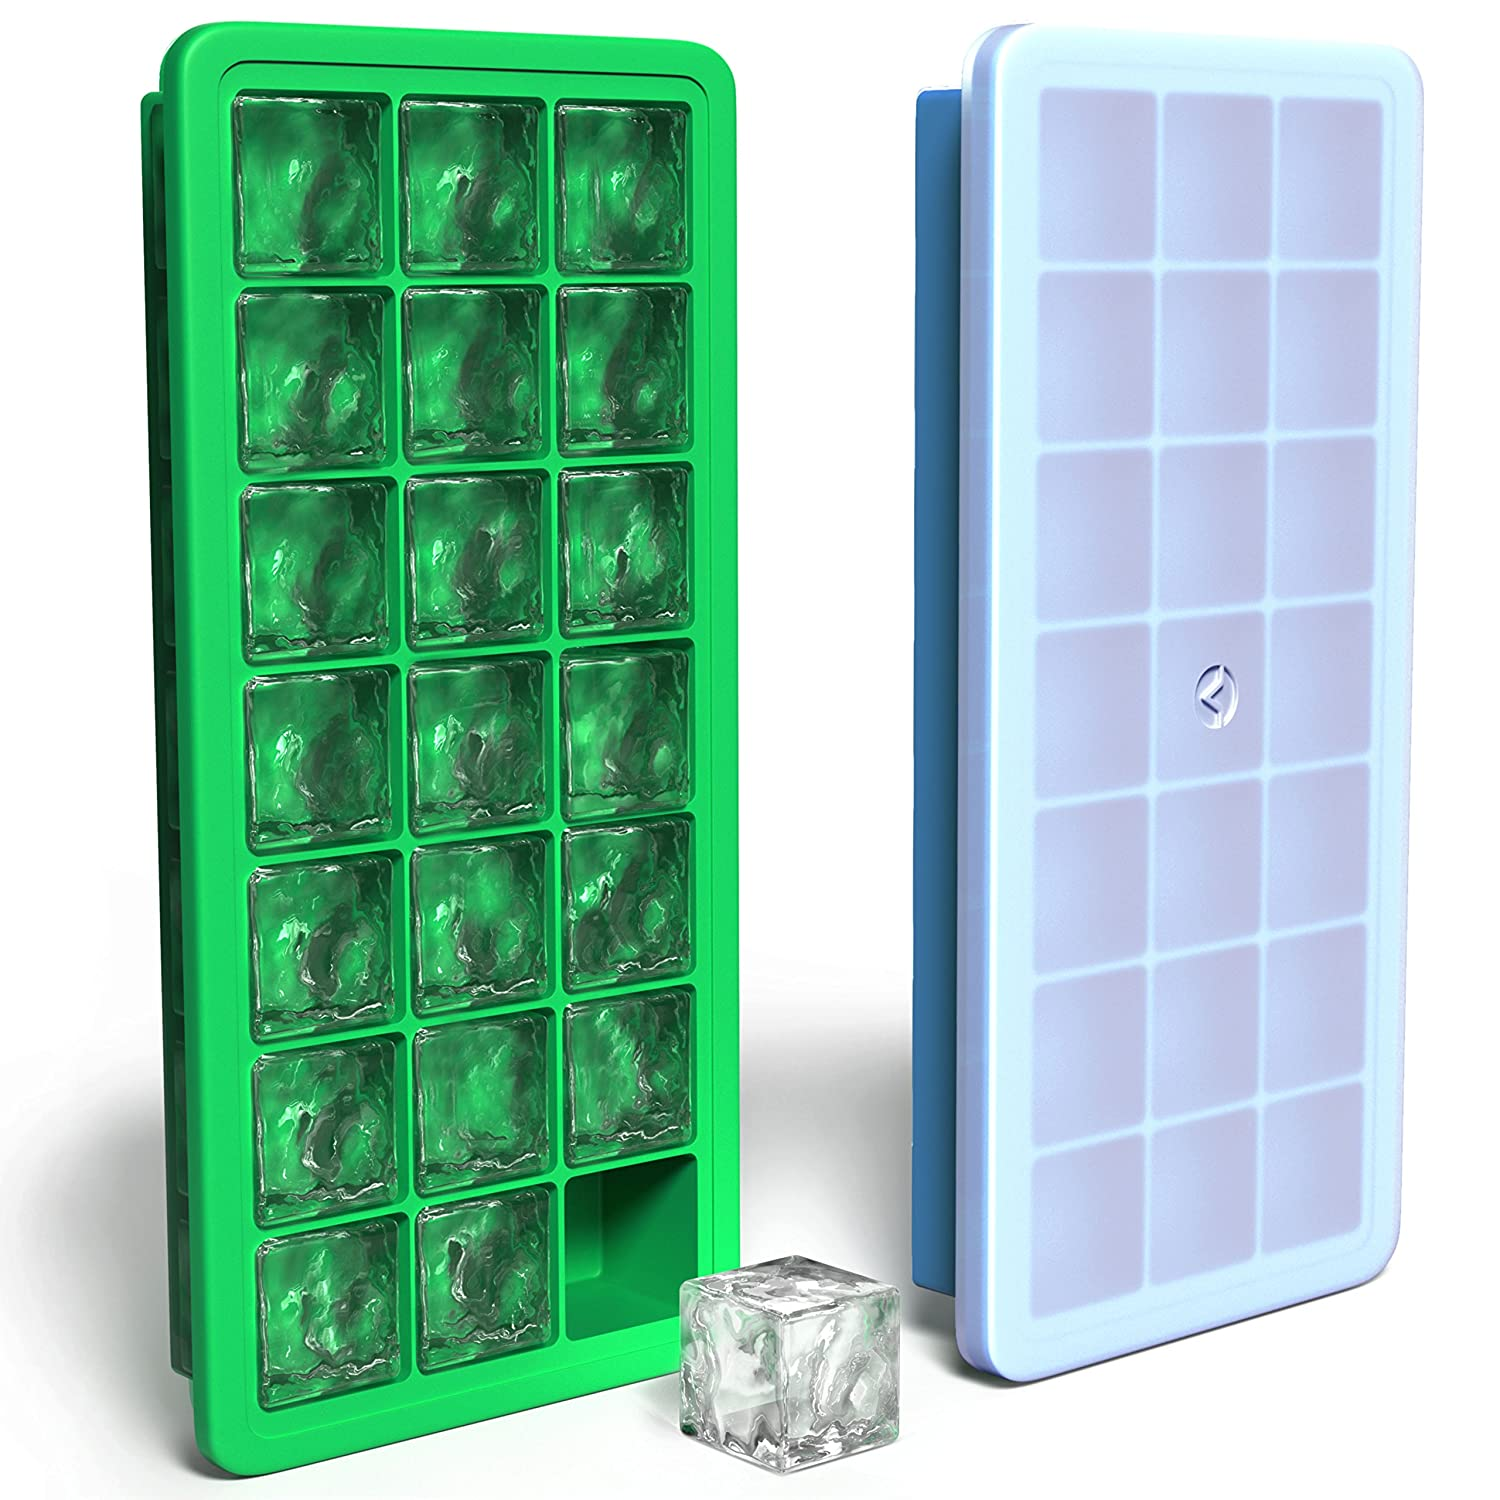 Vremi Silicone Ice Cube Trays with Lids